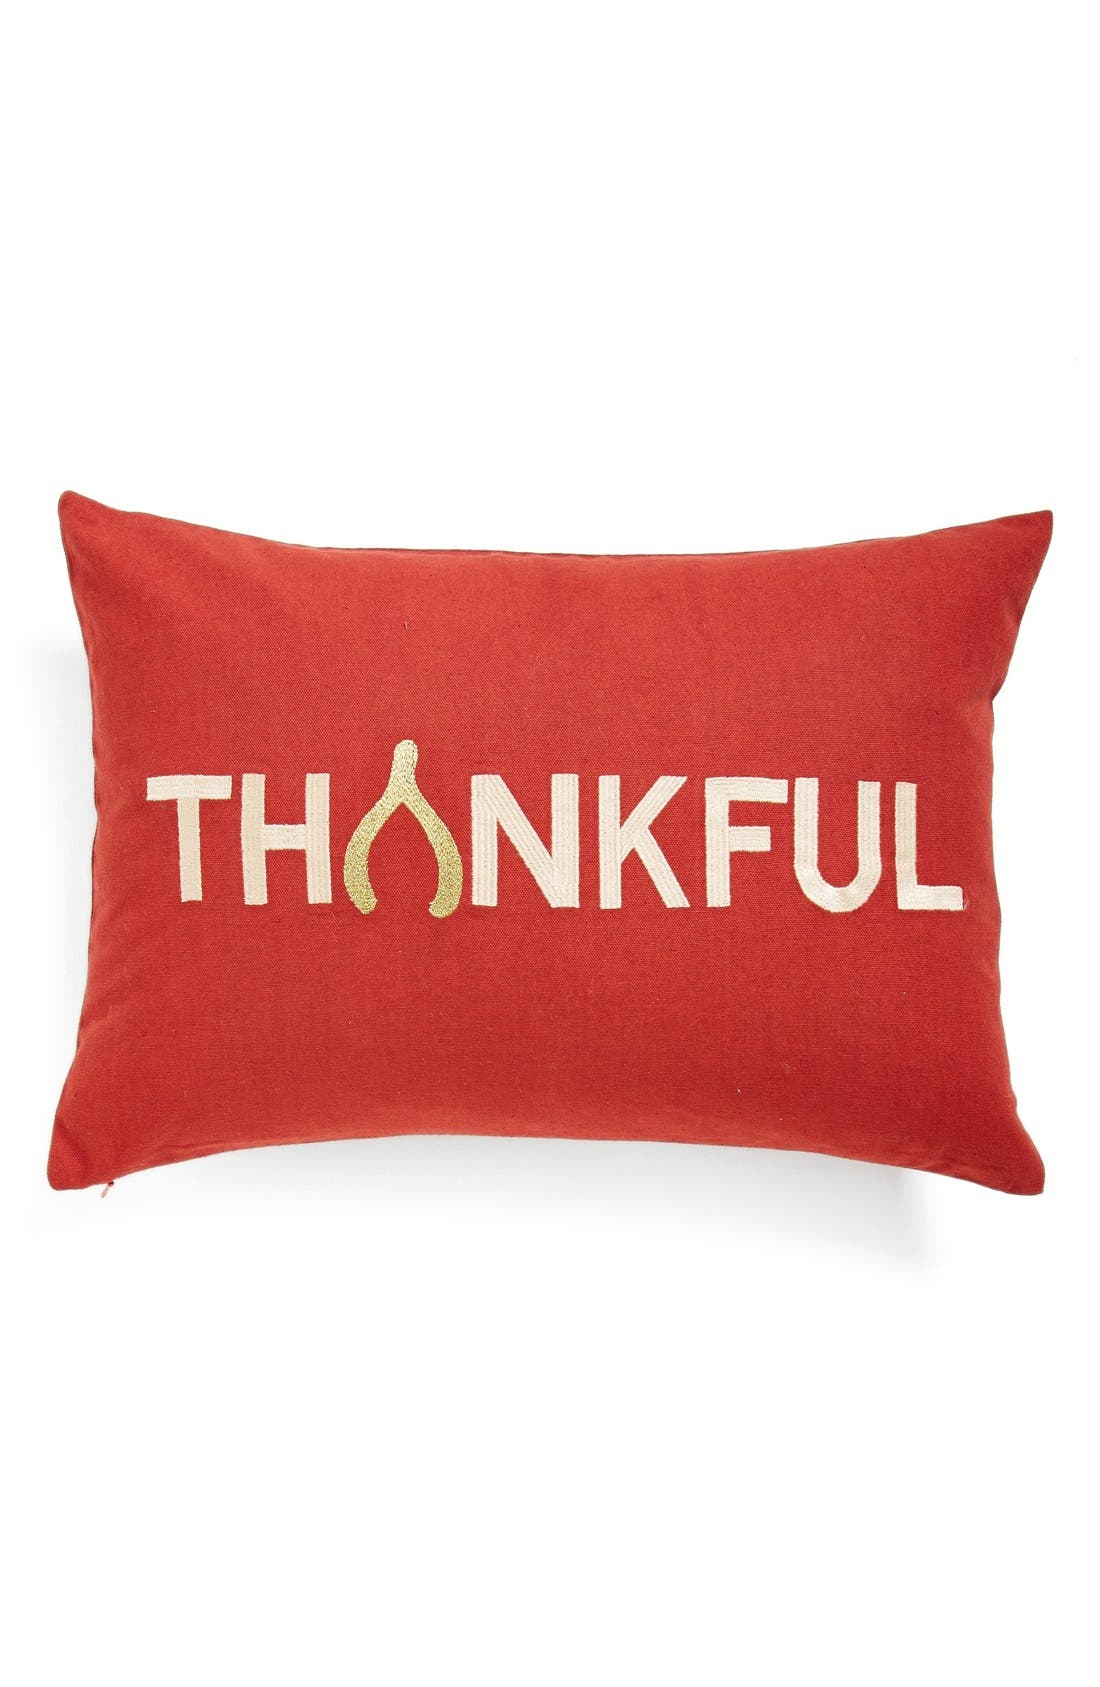 Alternate Image 1 Selected - Nordstrom at Home 'Thankful' Pillow